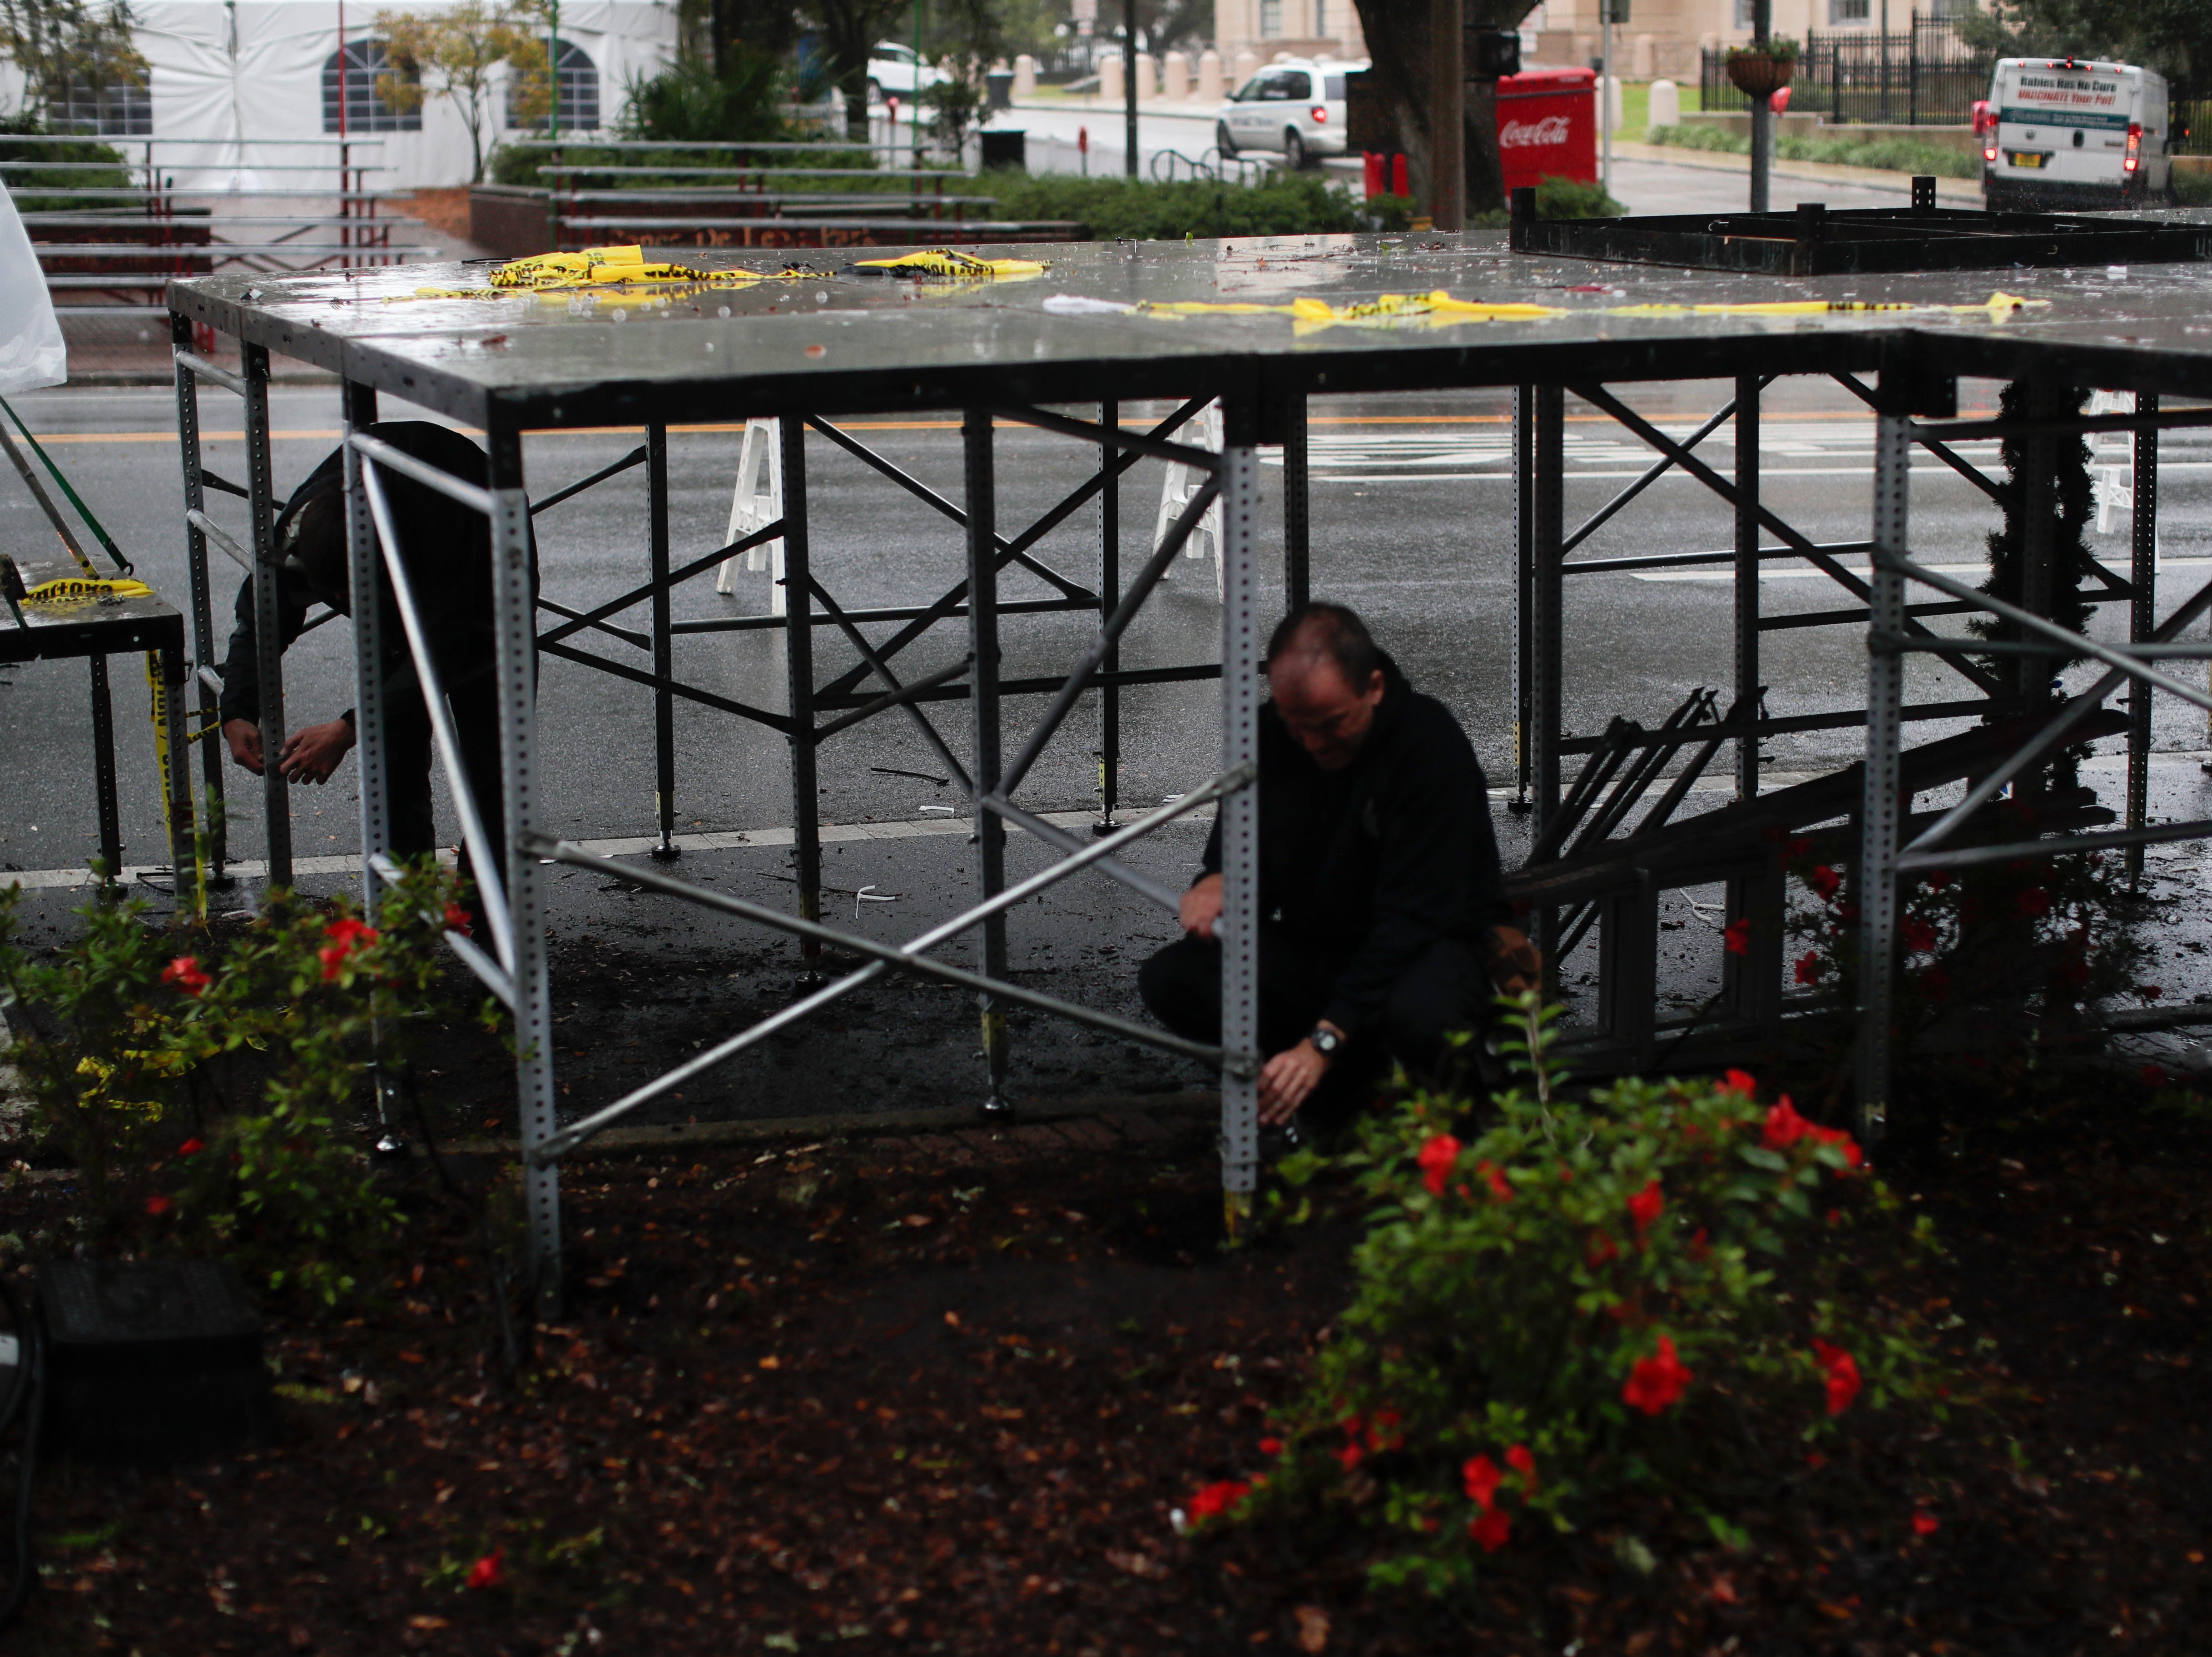 A stage is deconstructed in the Chain of Parks after it was announced that Tallahassee's Winter Festival was canceled Saturday, Dec. 1, 2018.